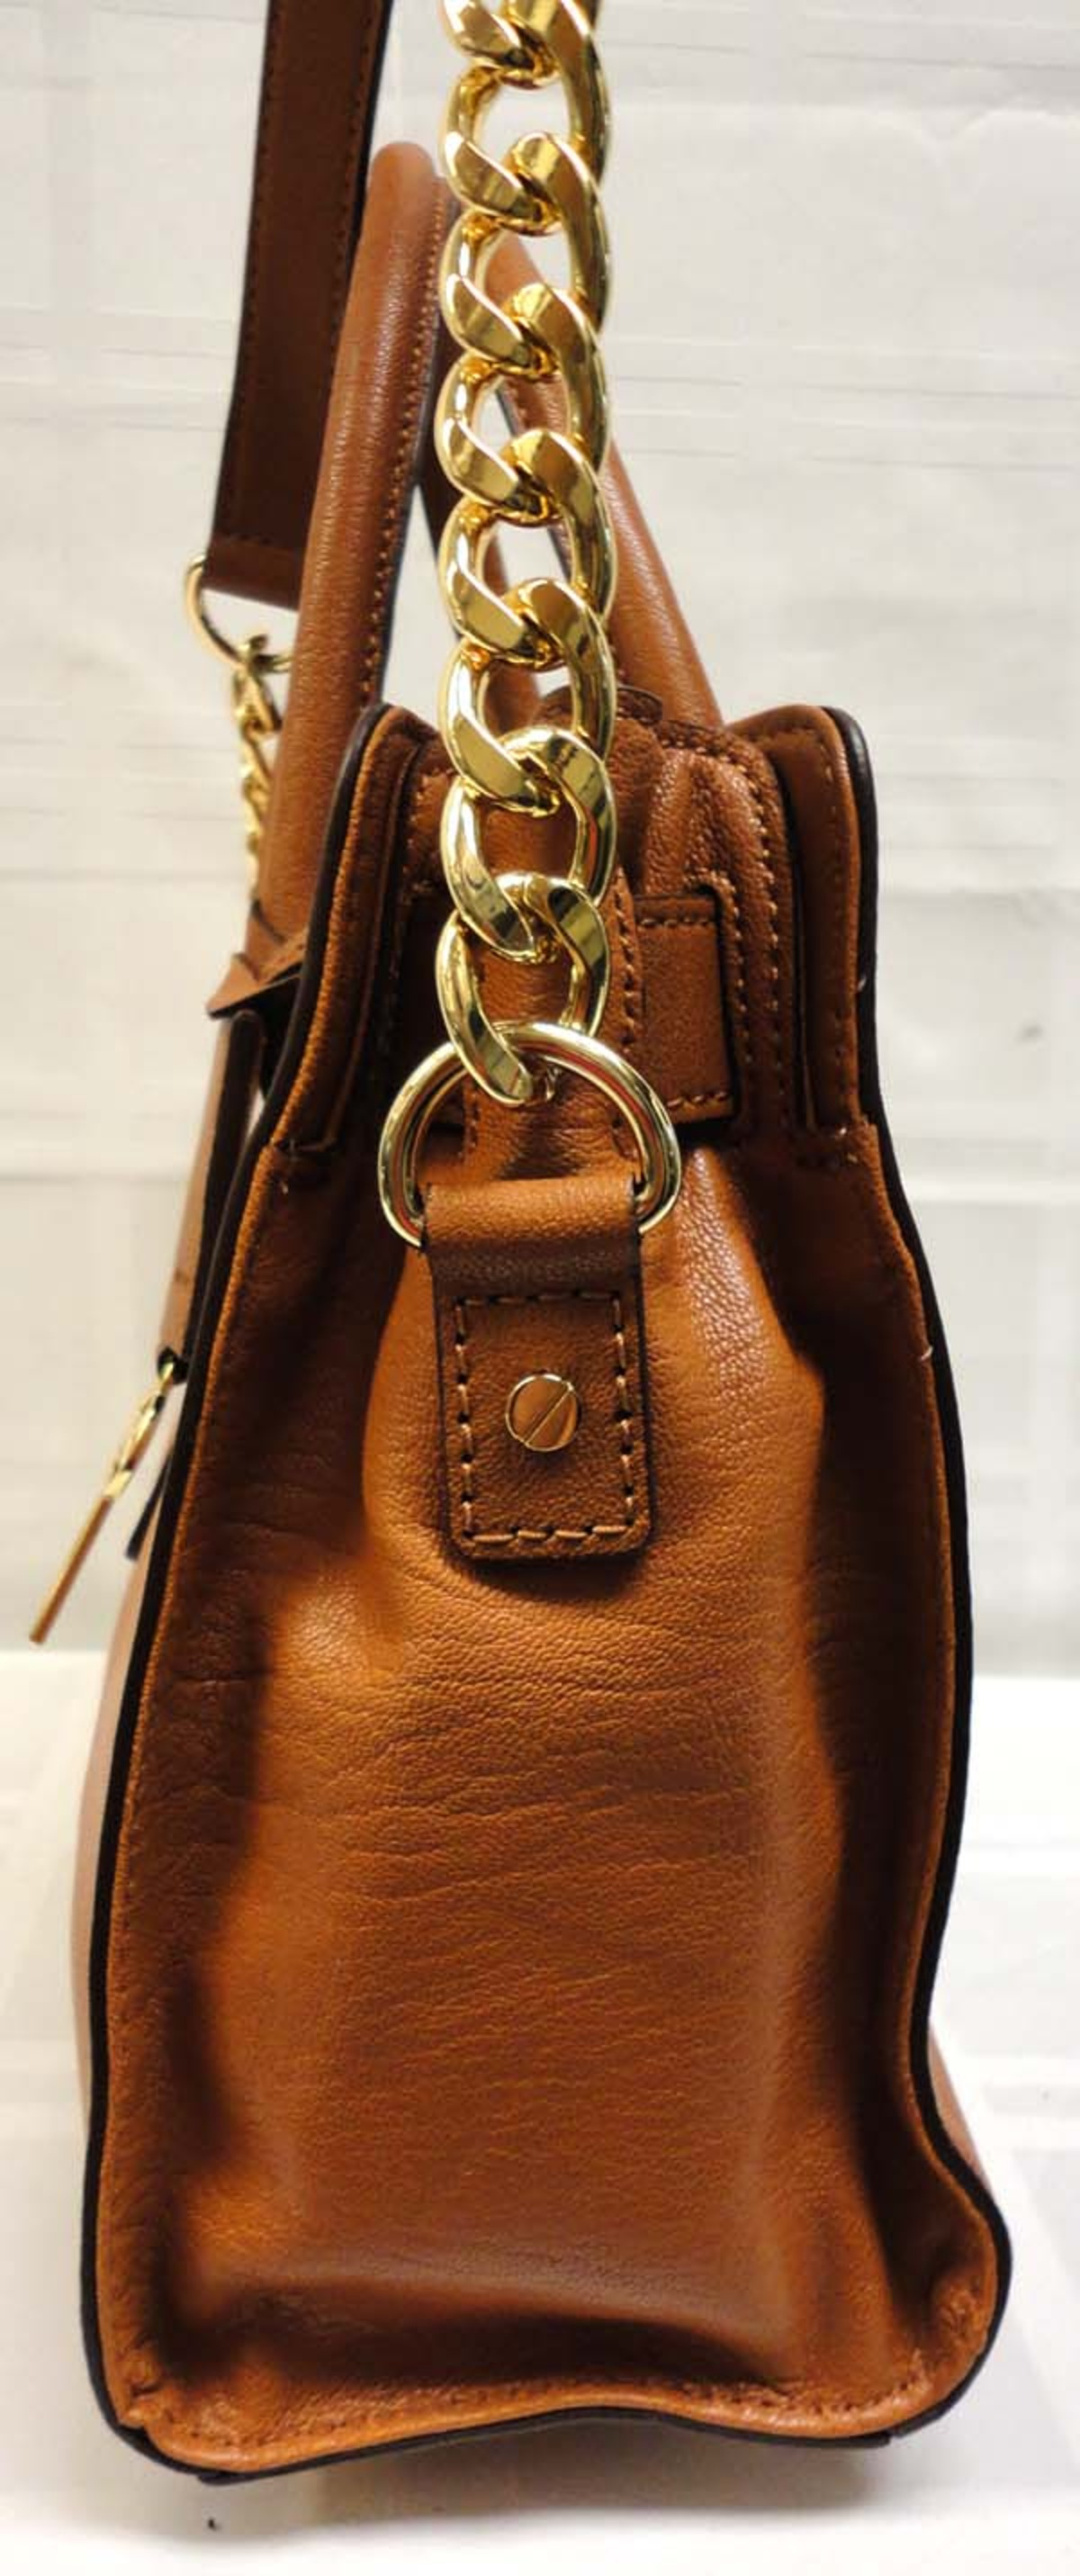 Authentic Michael Kors Brown Hamilton Leather Satchel Bag MSRP $298